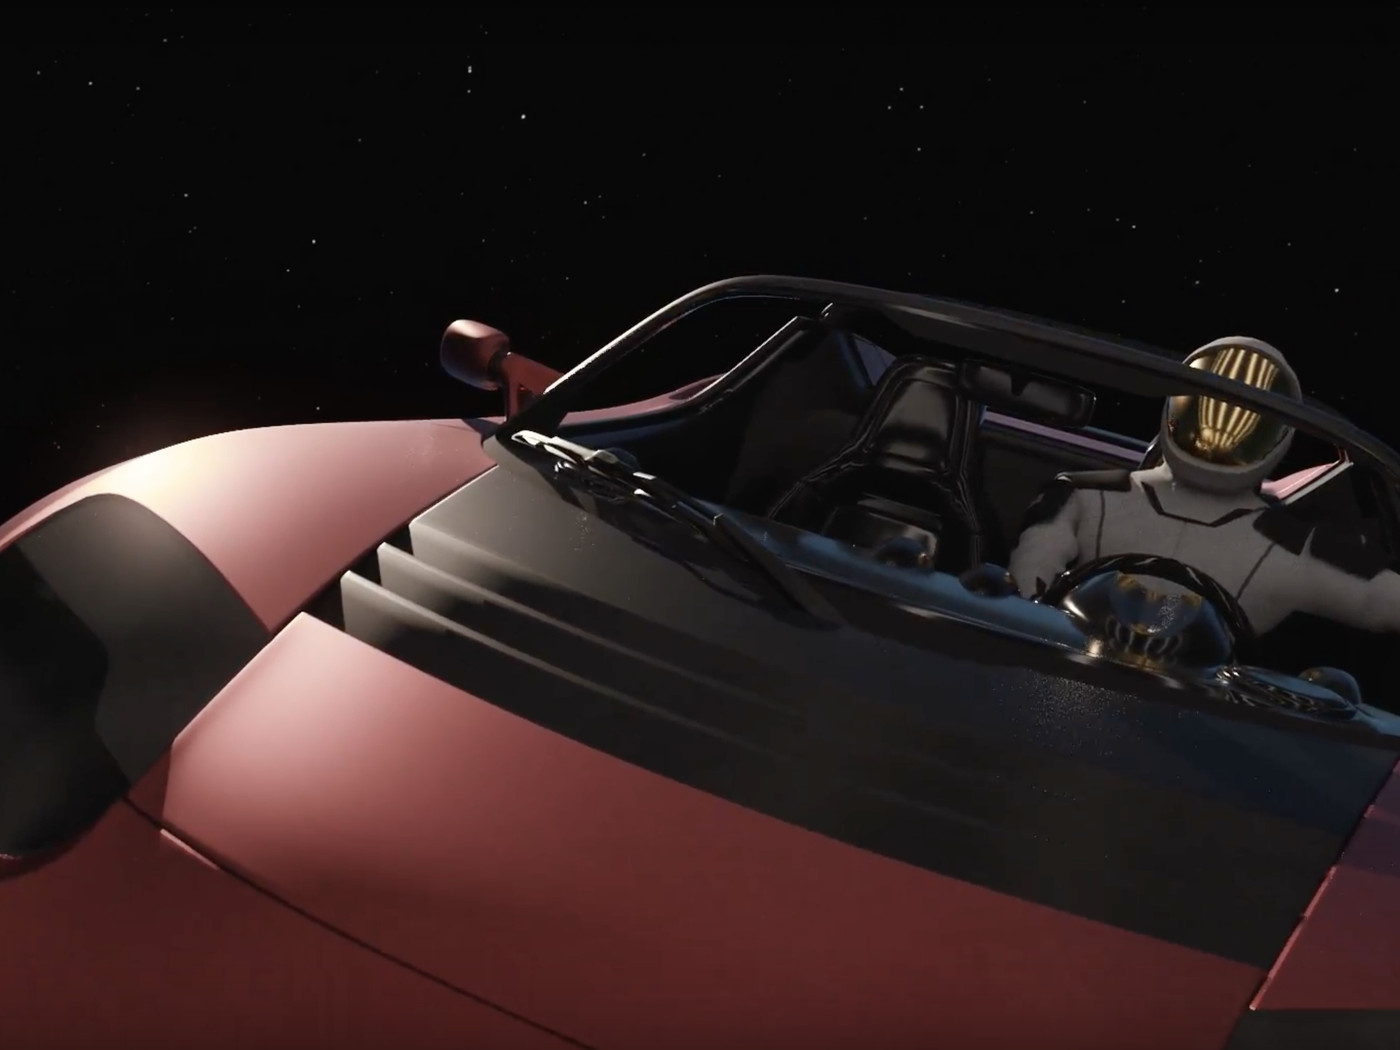 Spacex Animation Shows What Elon Musks Roadster Will Look Like On Tesla Motor Design Diagram Pics Its Way Toward Mars The Verge